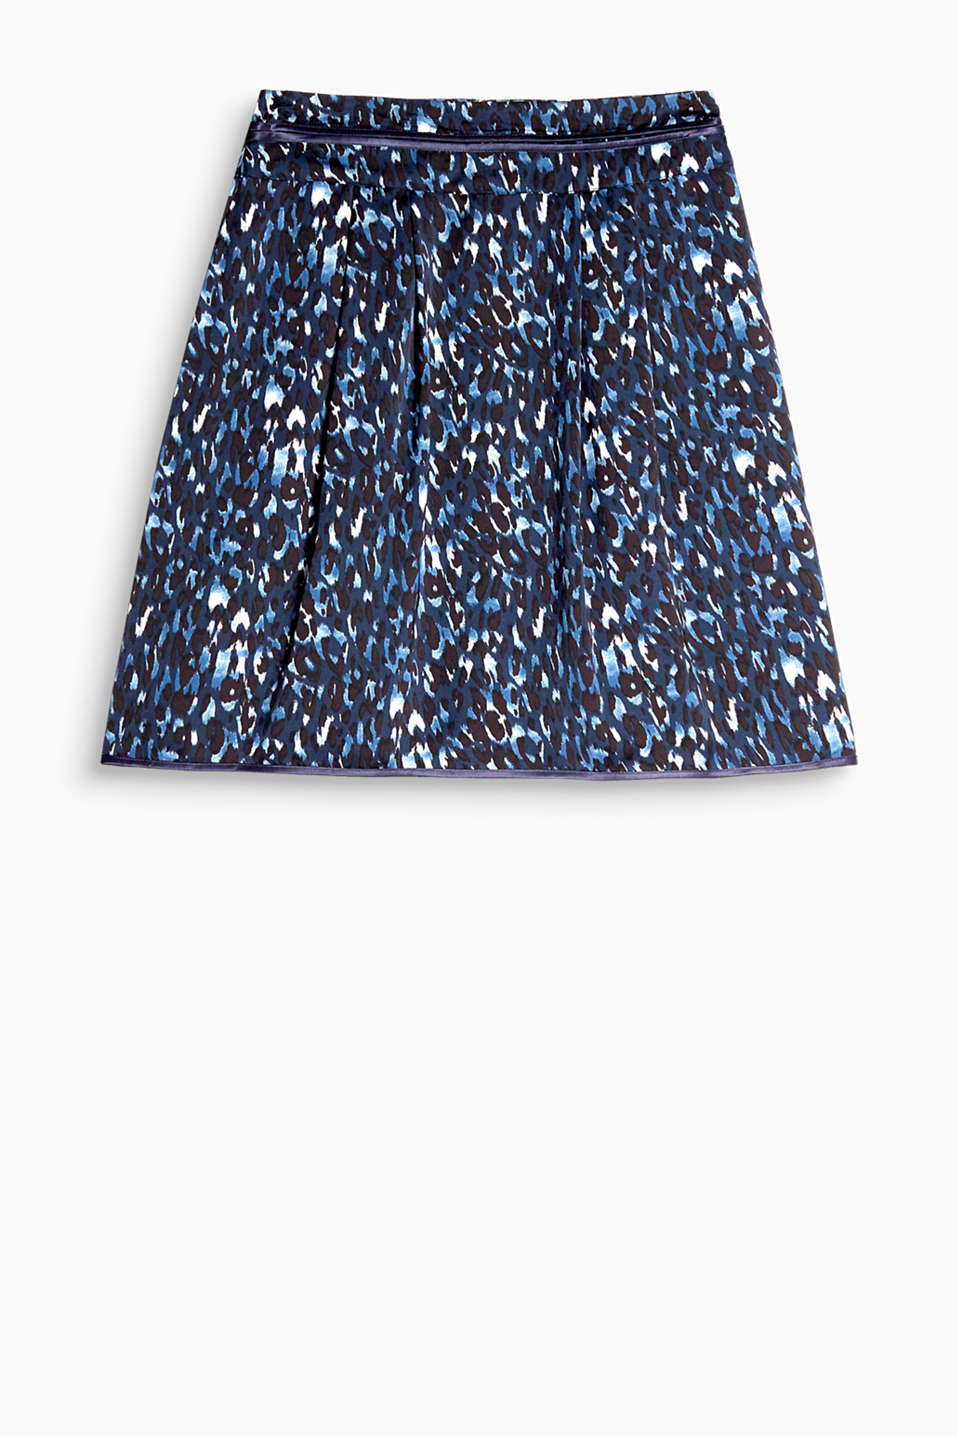 Flared skirt in flowing, gently shimmering fabric